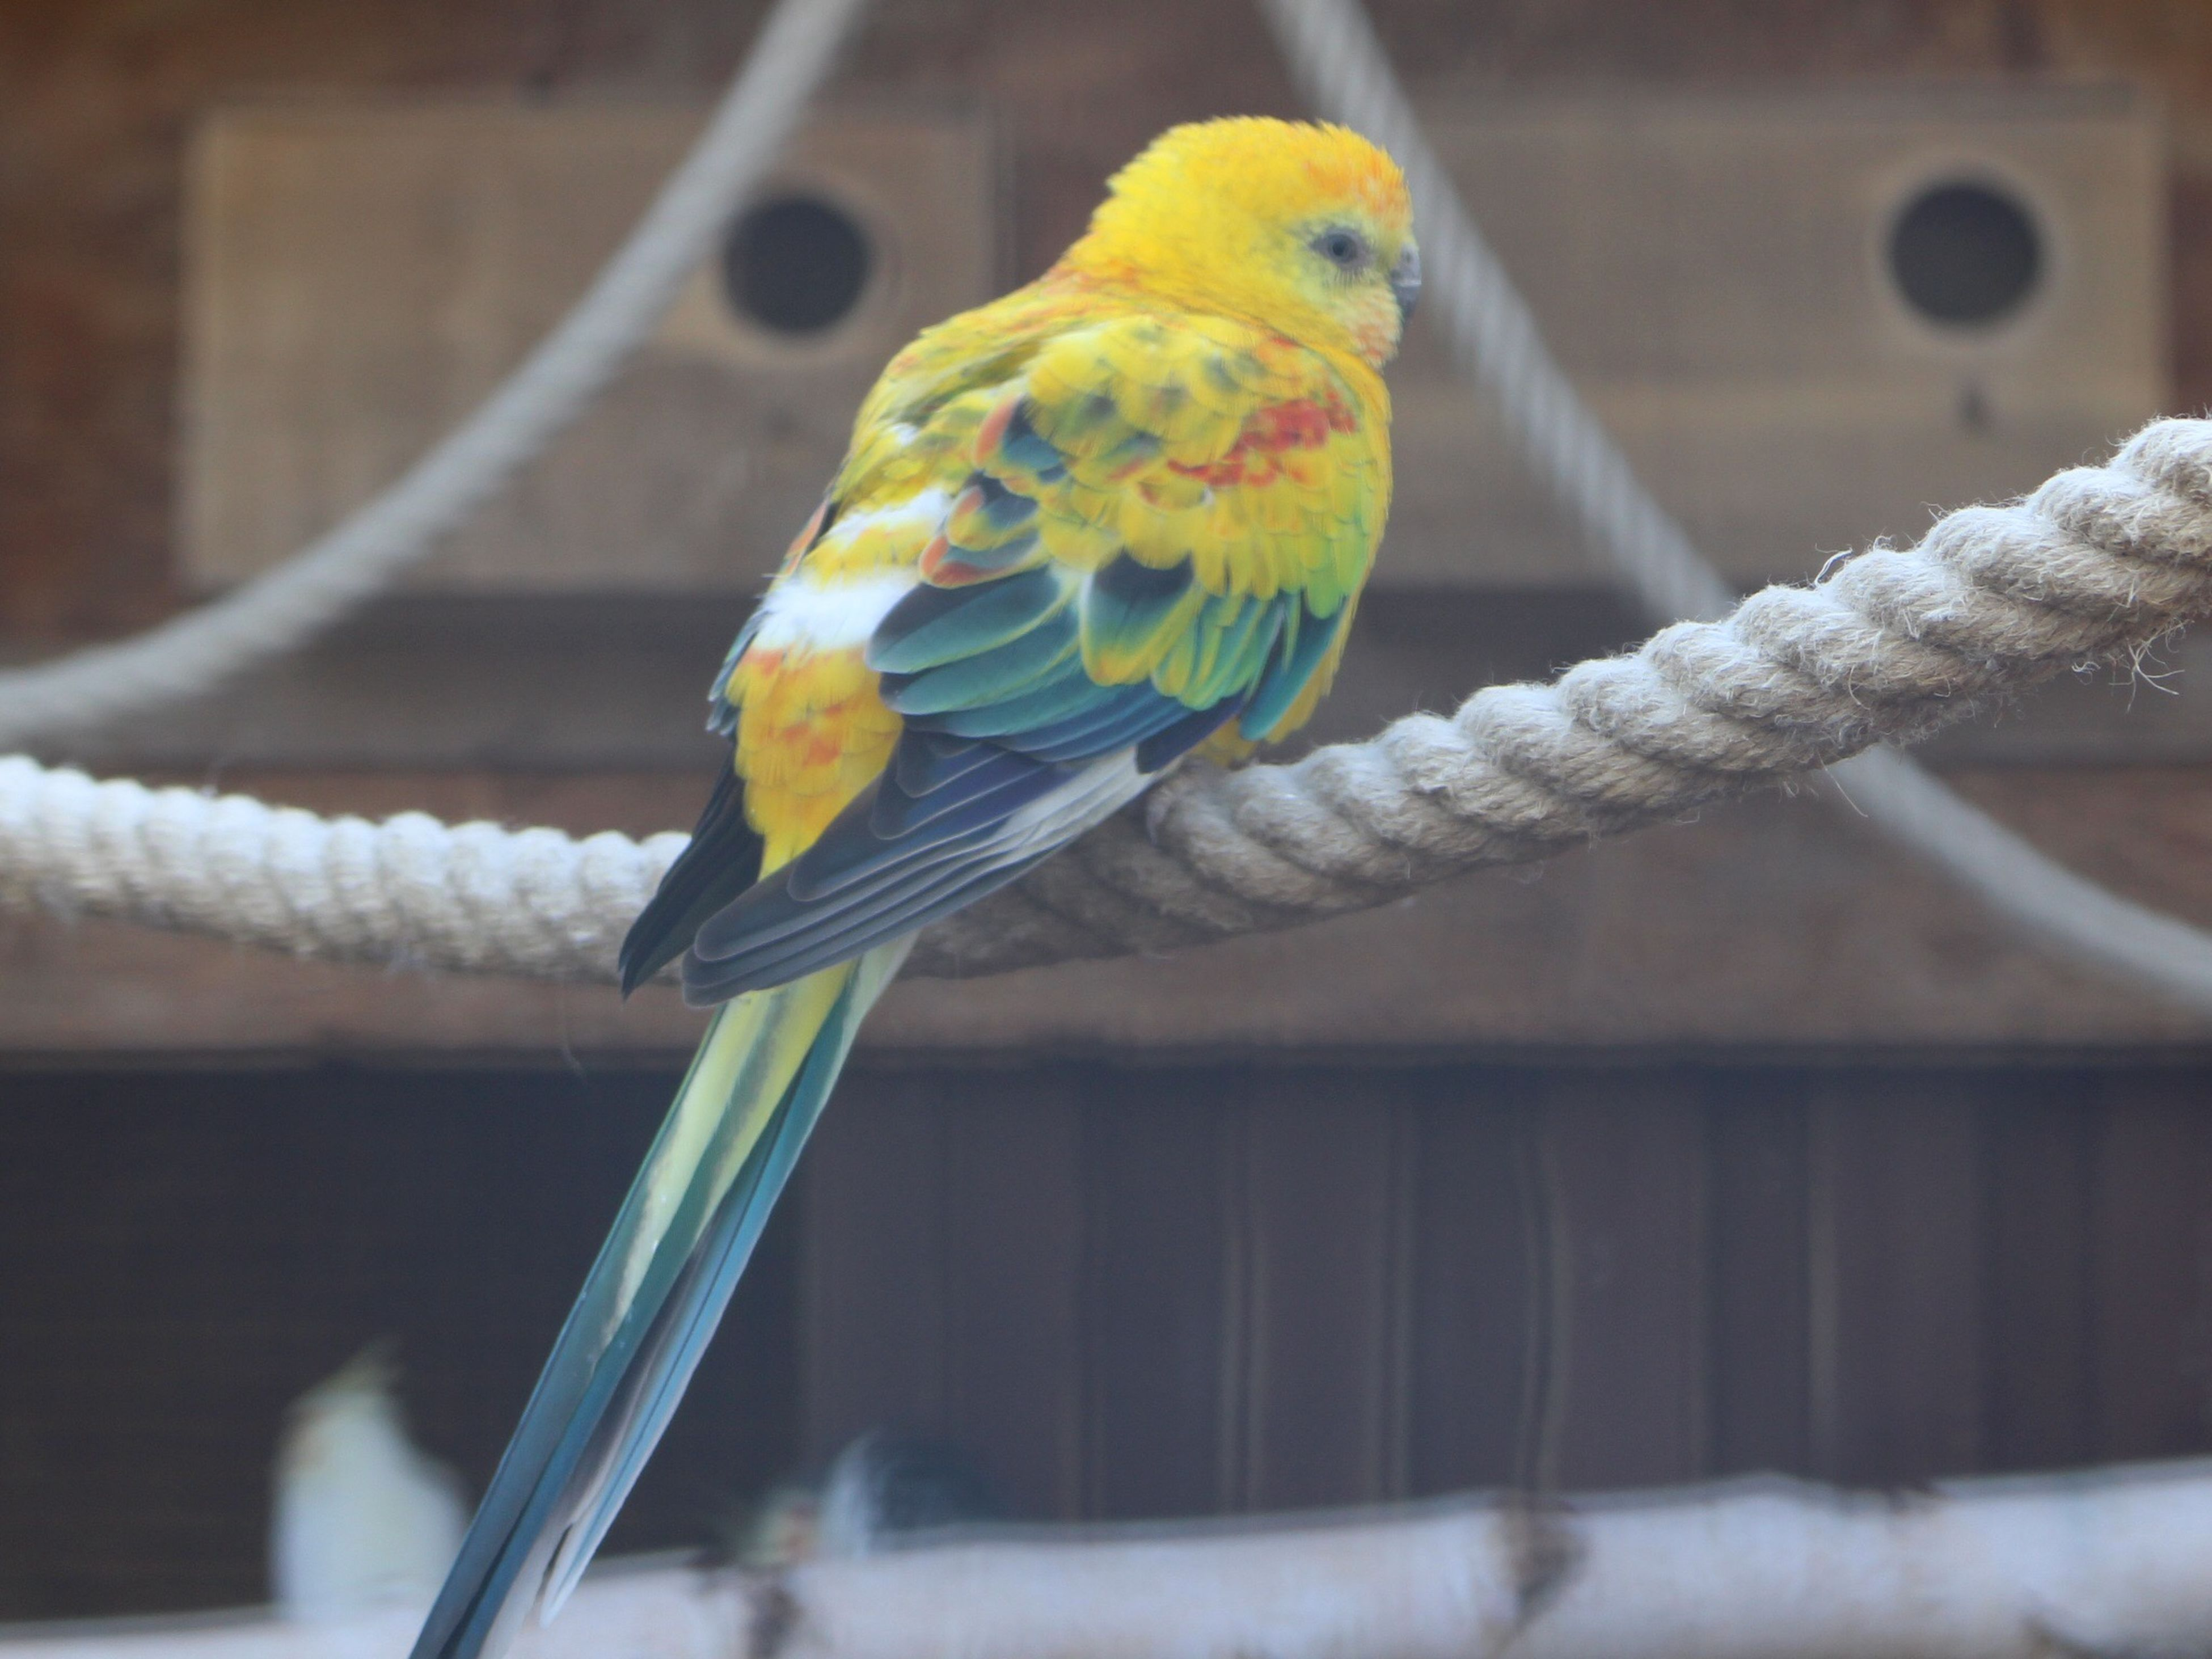 animal themes, bird, one animal, perching, parrot, animals in the wild, wildlife, focus on foreground, beak, multi colored, close-up, full length, cage, branch, birdcage, side view, railing, zoology, selective focus, nature